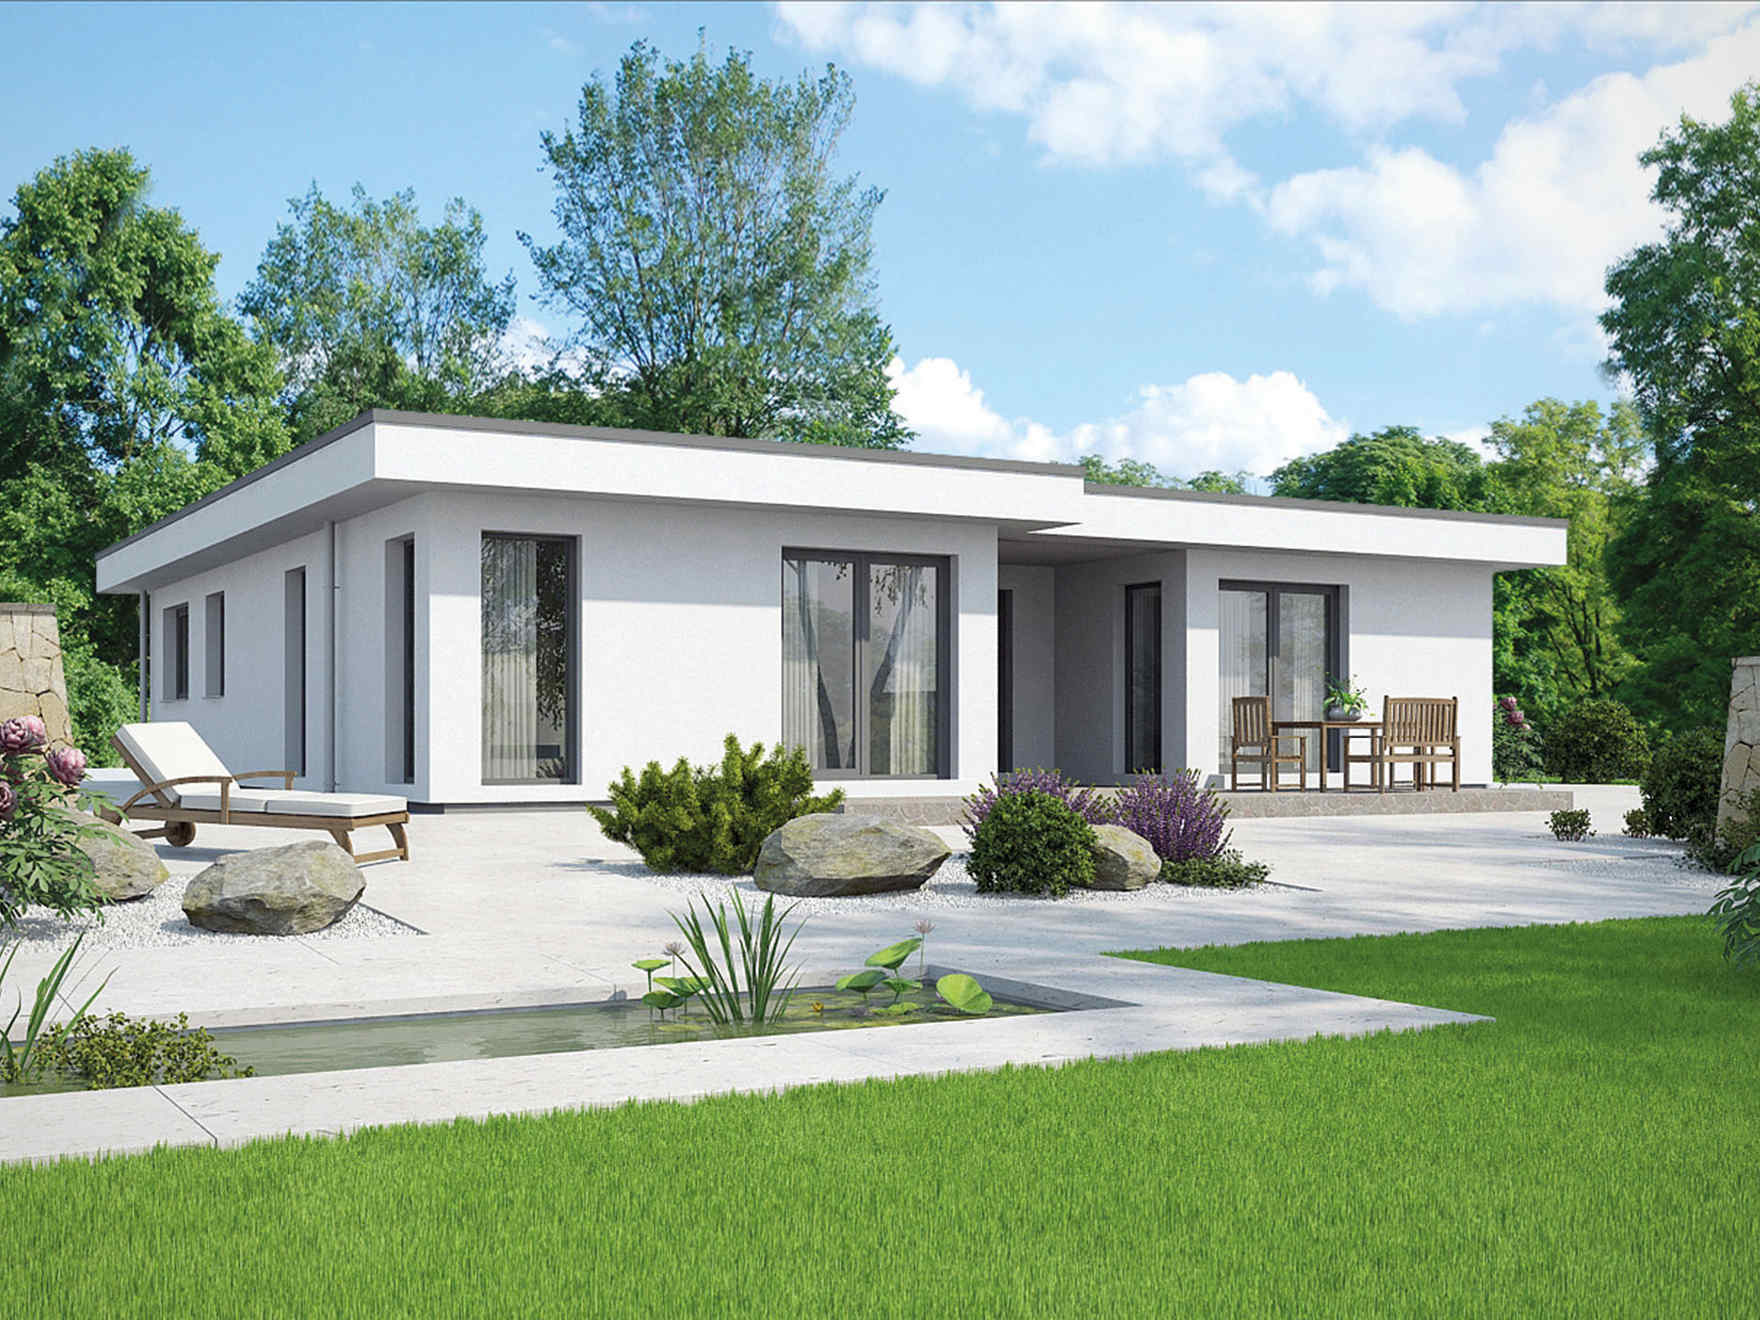 Picture of Charming Bungalow House Design